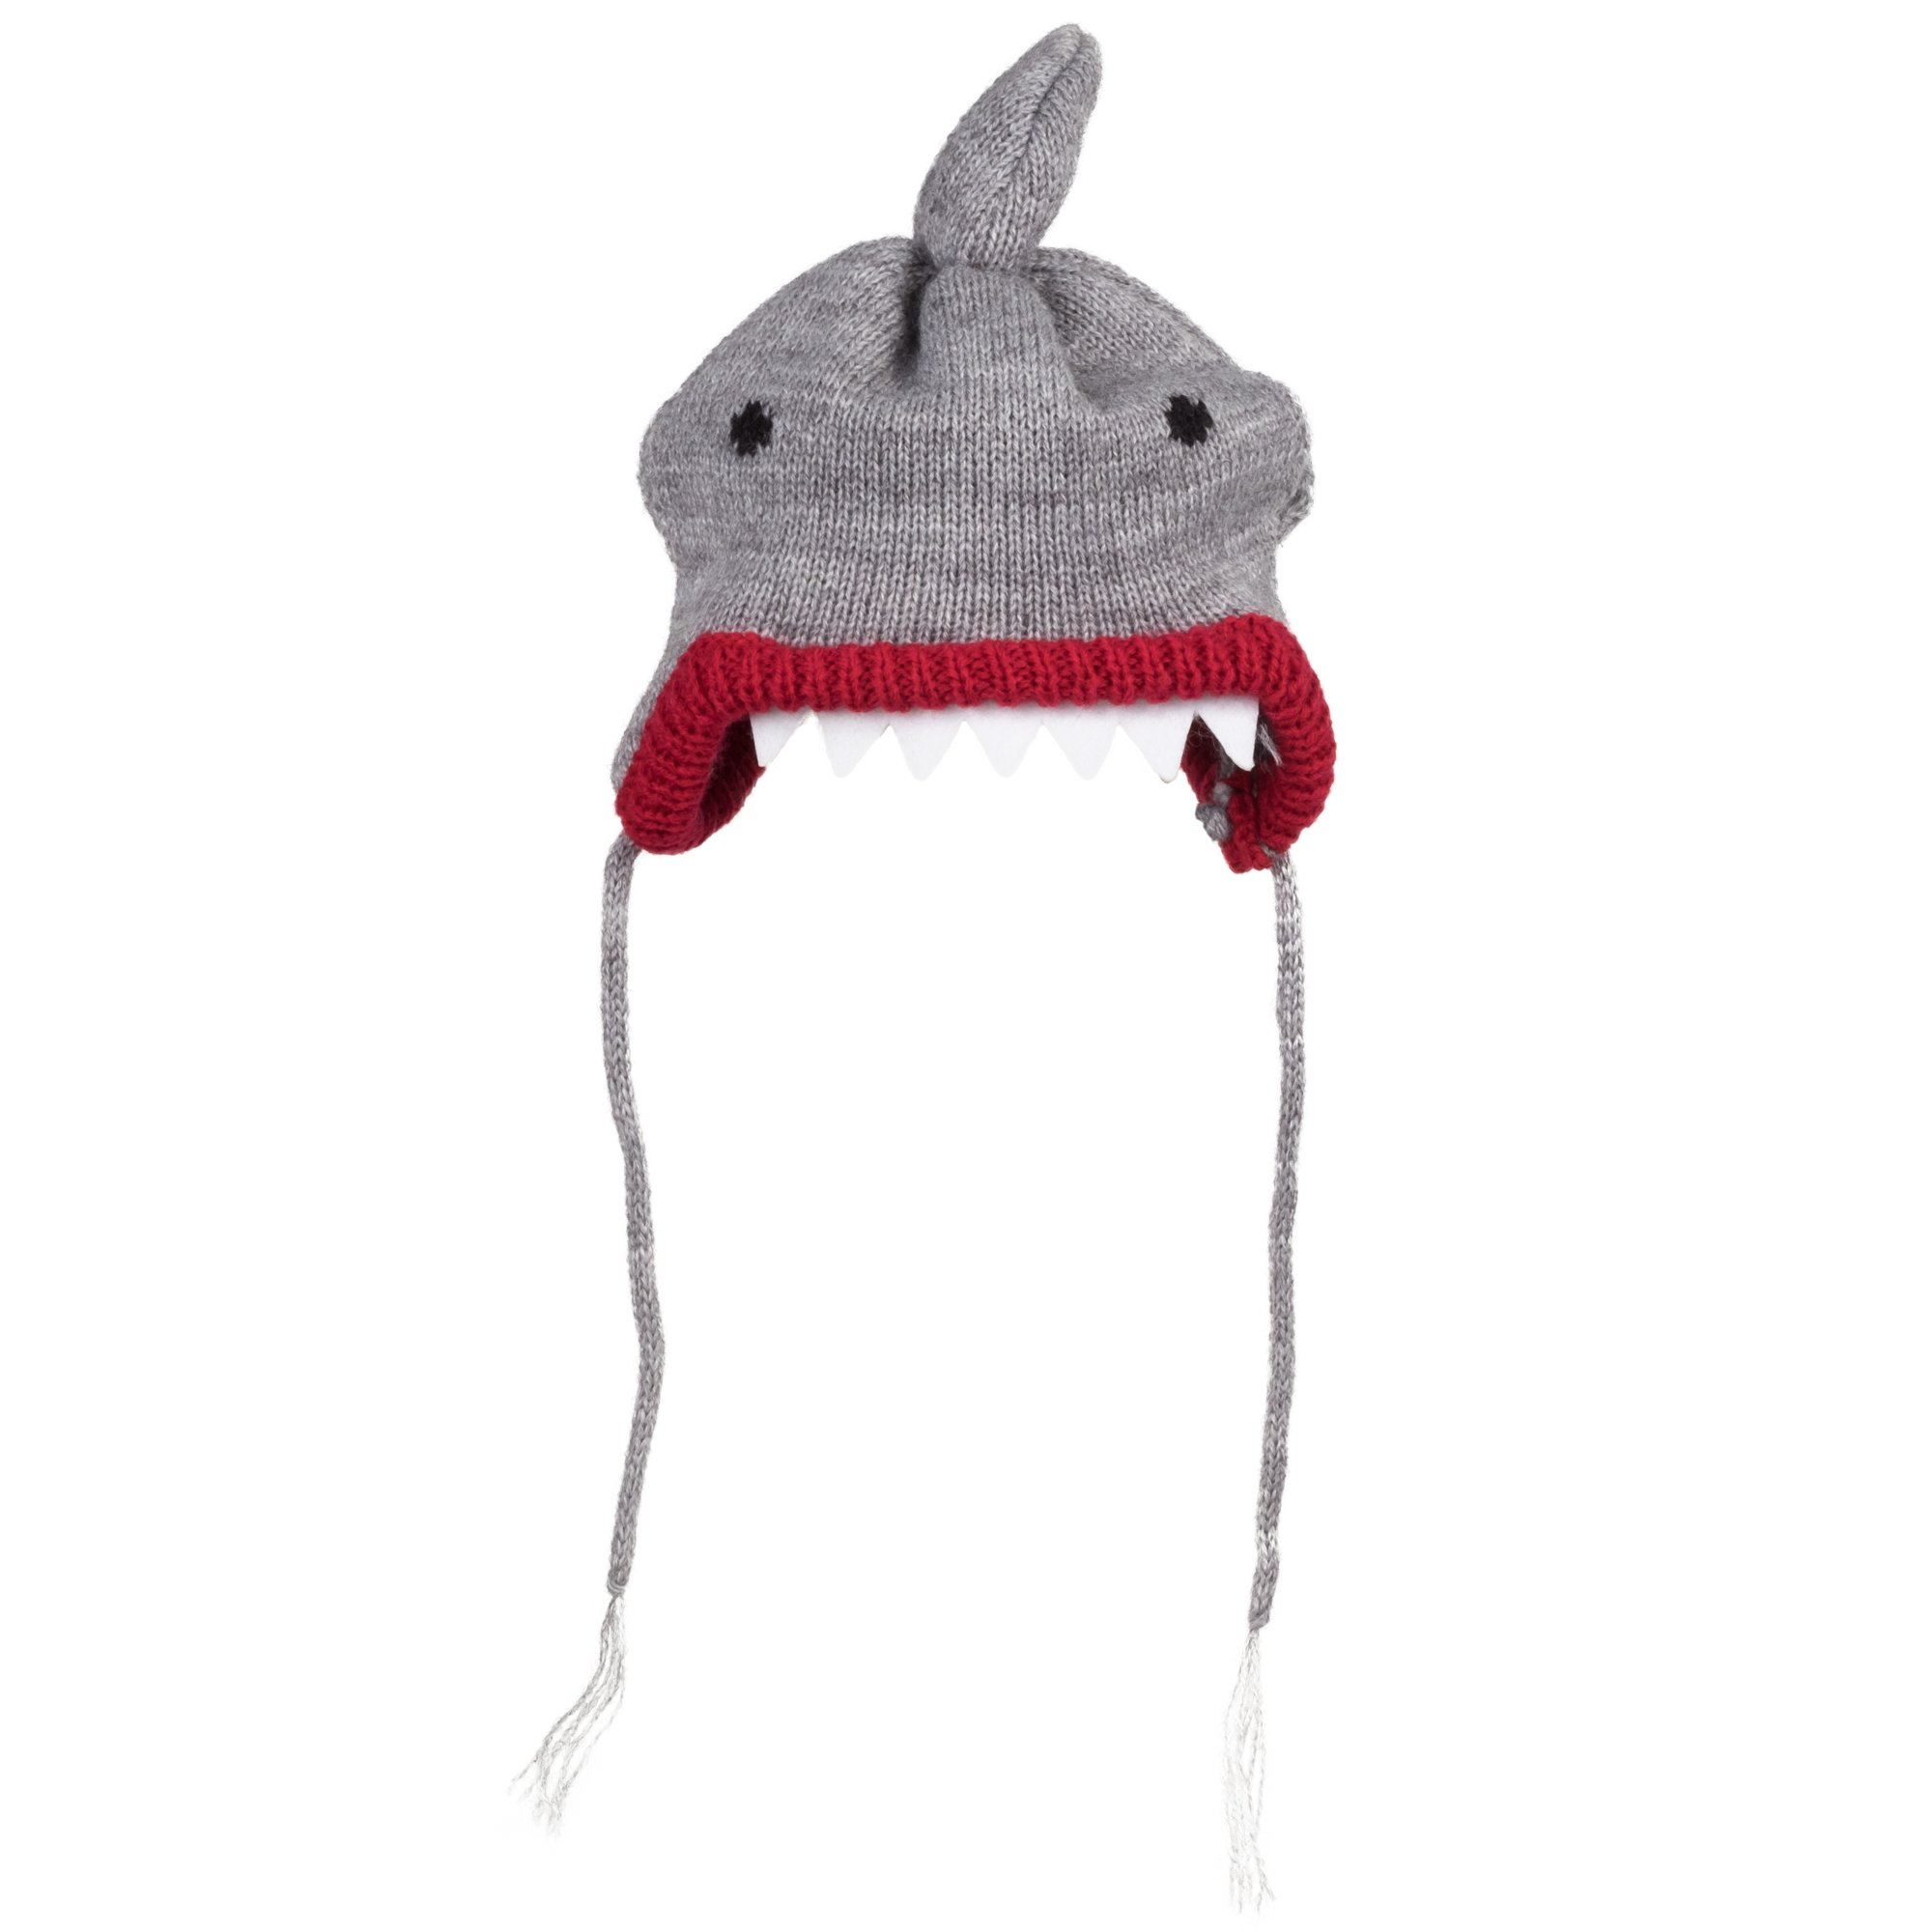 The Worthy Dog Shark Hat for Dogs, Large, Gray